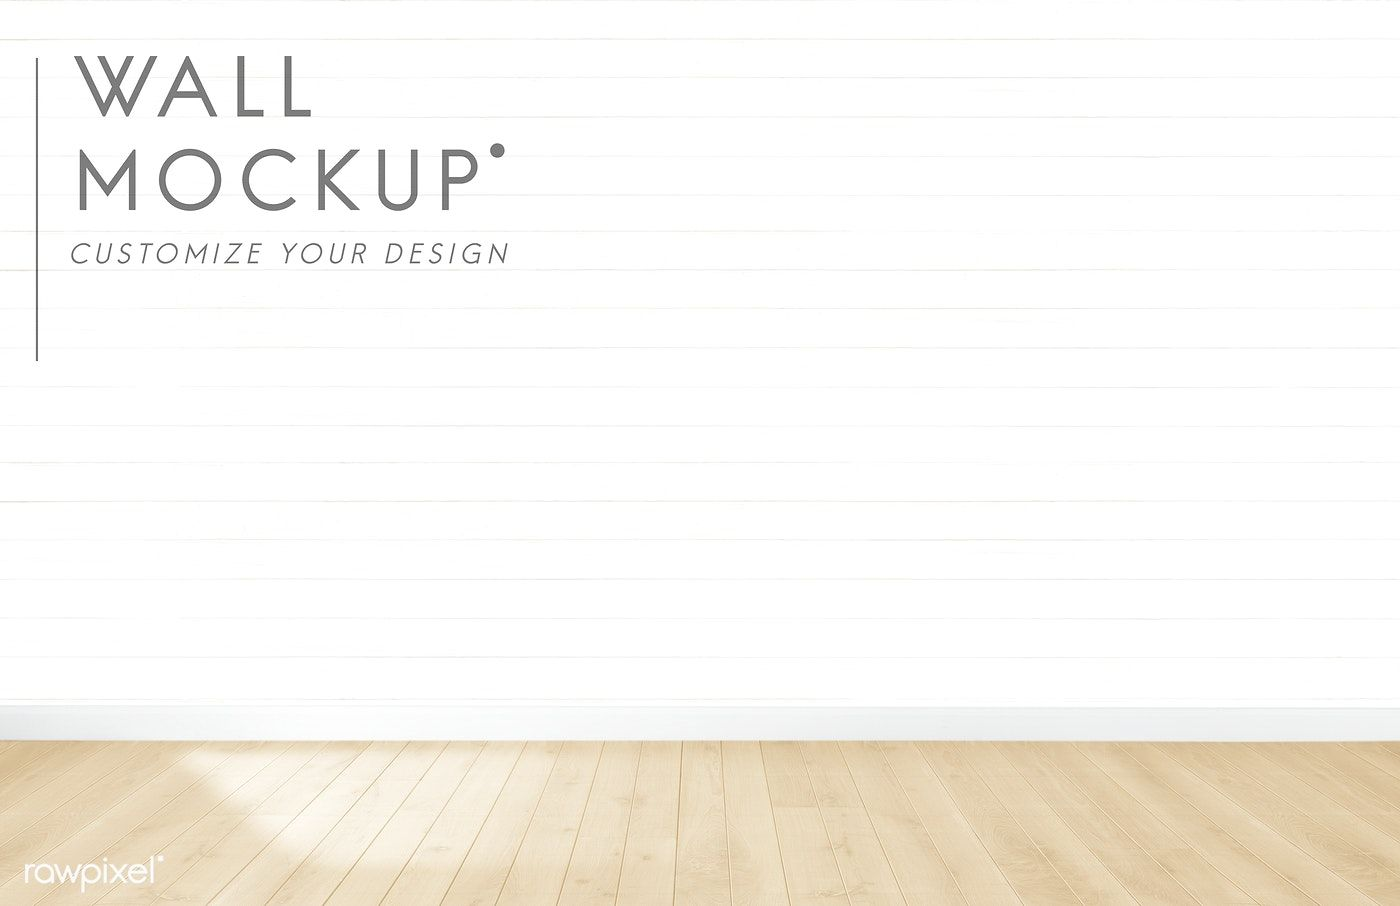 Empty Room With A White Wall Mockup Free Image By Rawpixel Com Empty Room White Walls Burgundy Walls